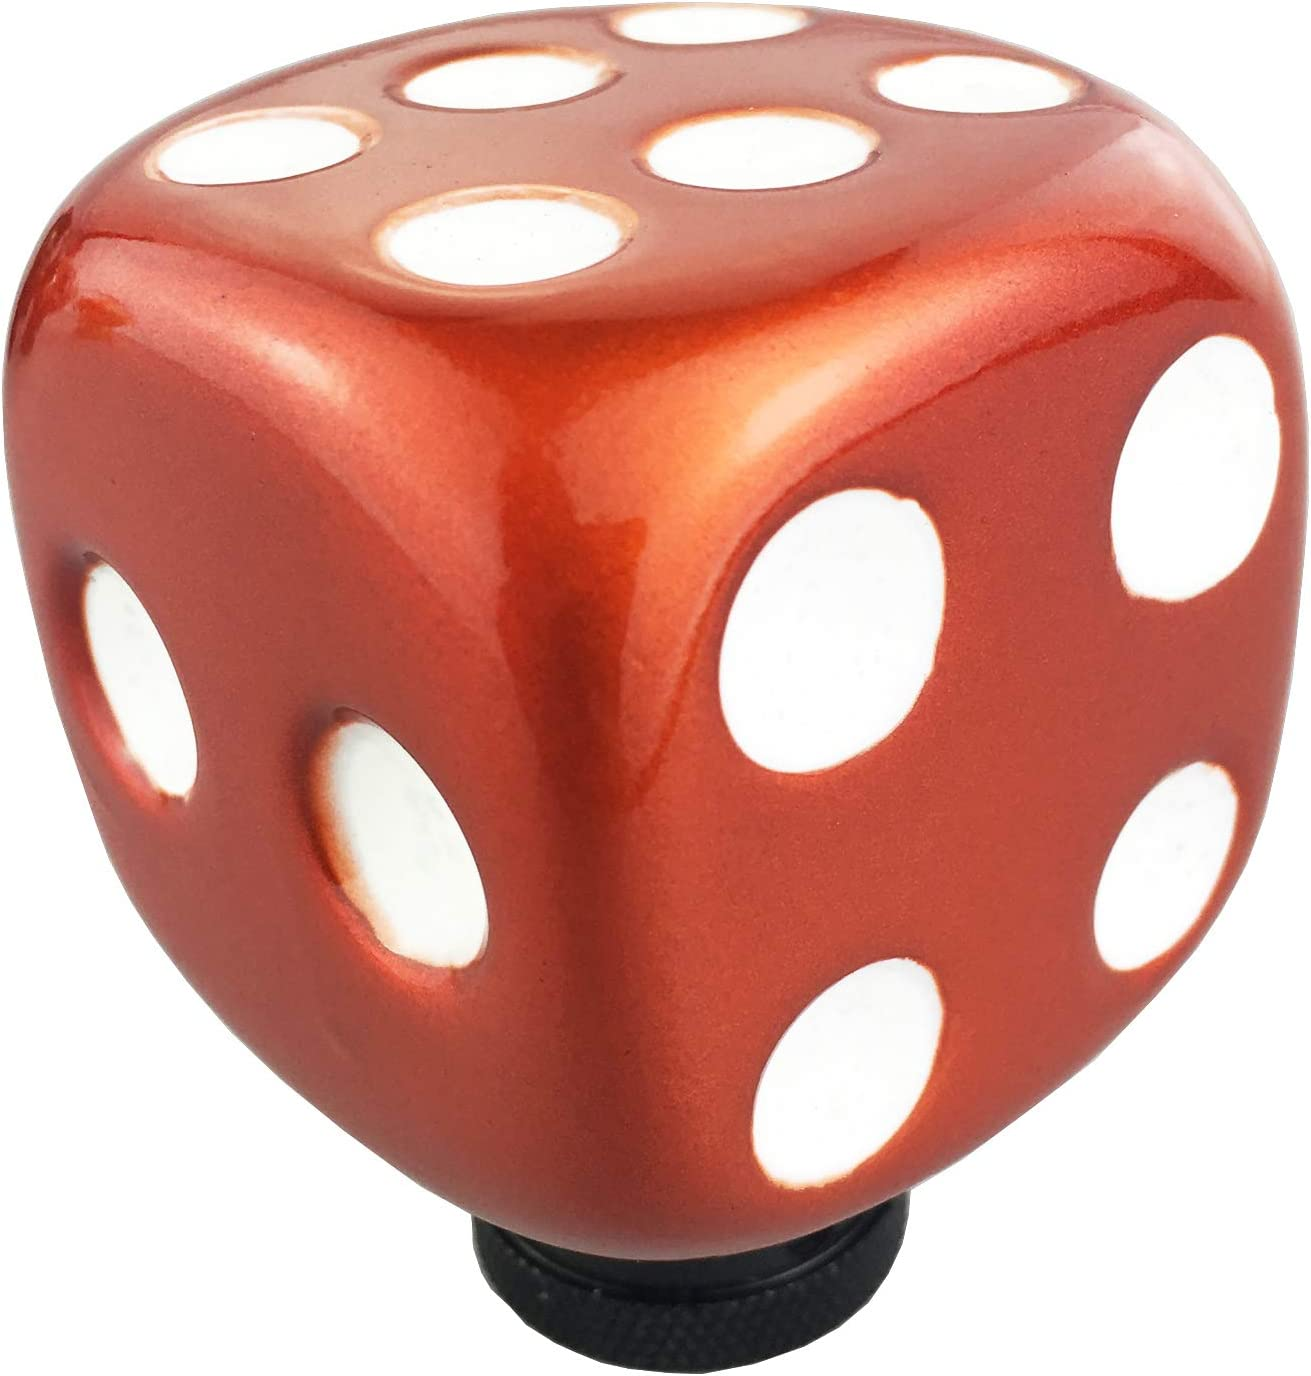 White Arenbel Dice Gear Shifter Knob Shifting Stick Shift Head Lever Shifter Handle fit Most MT at (Orange